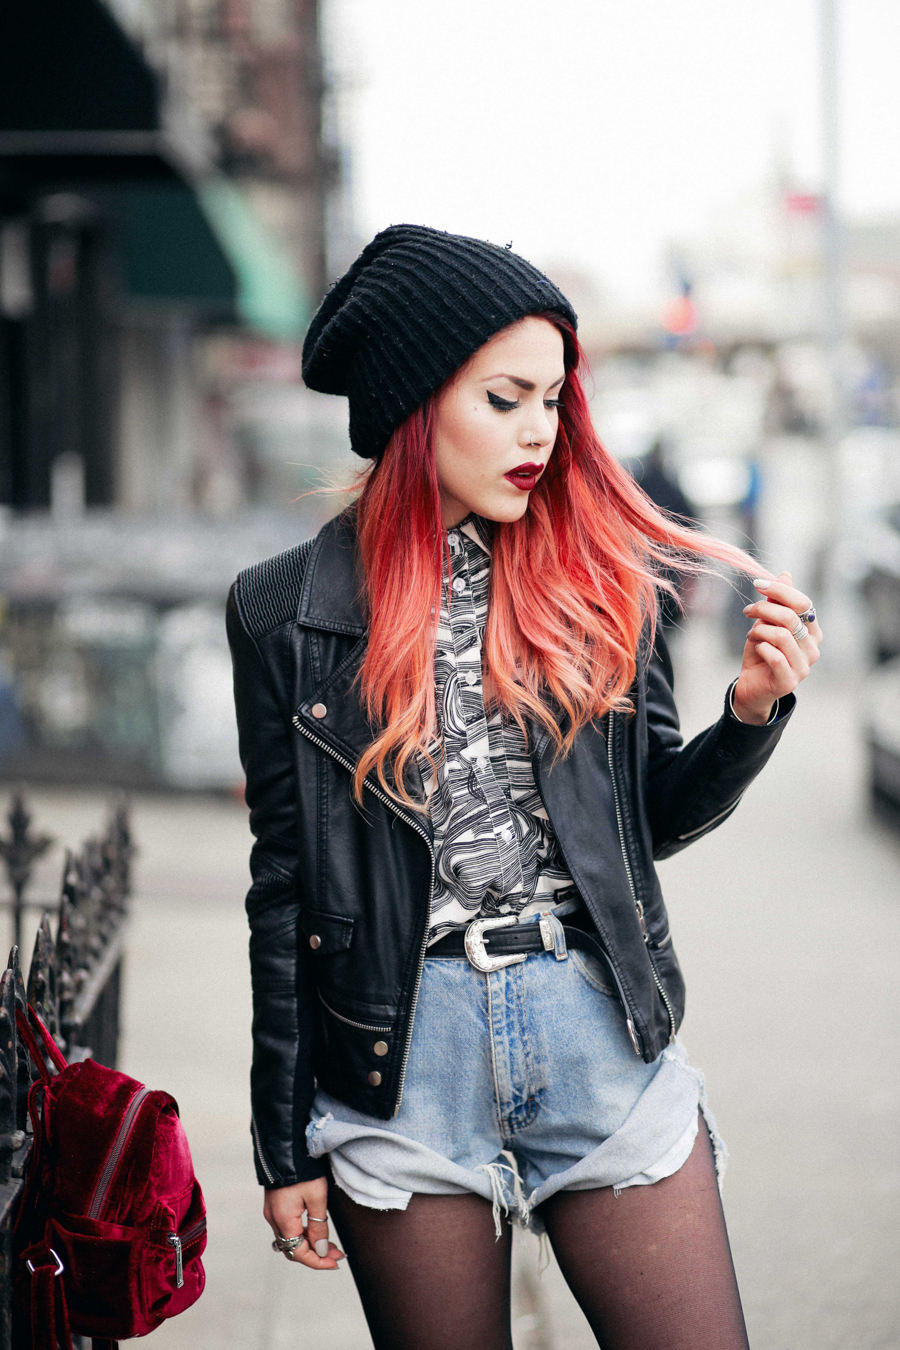 Le Happy wearing vintage denim shorts and biker jacket